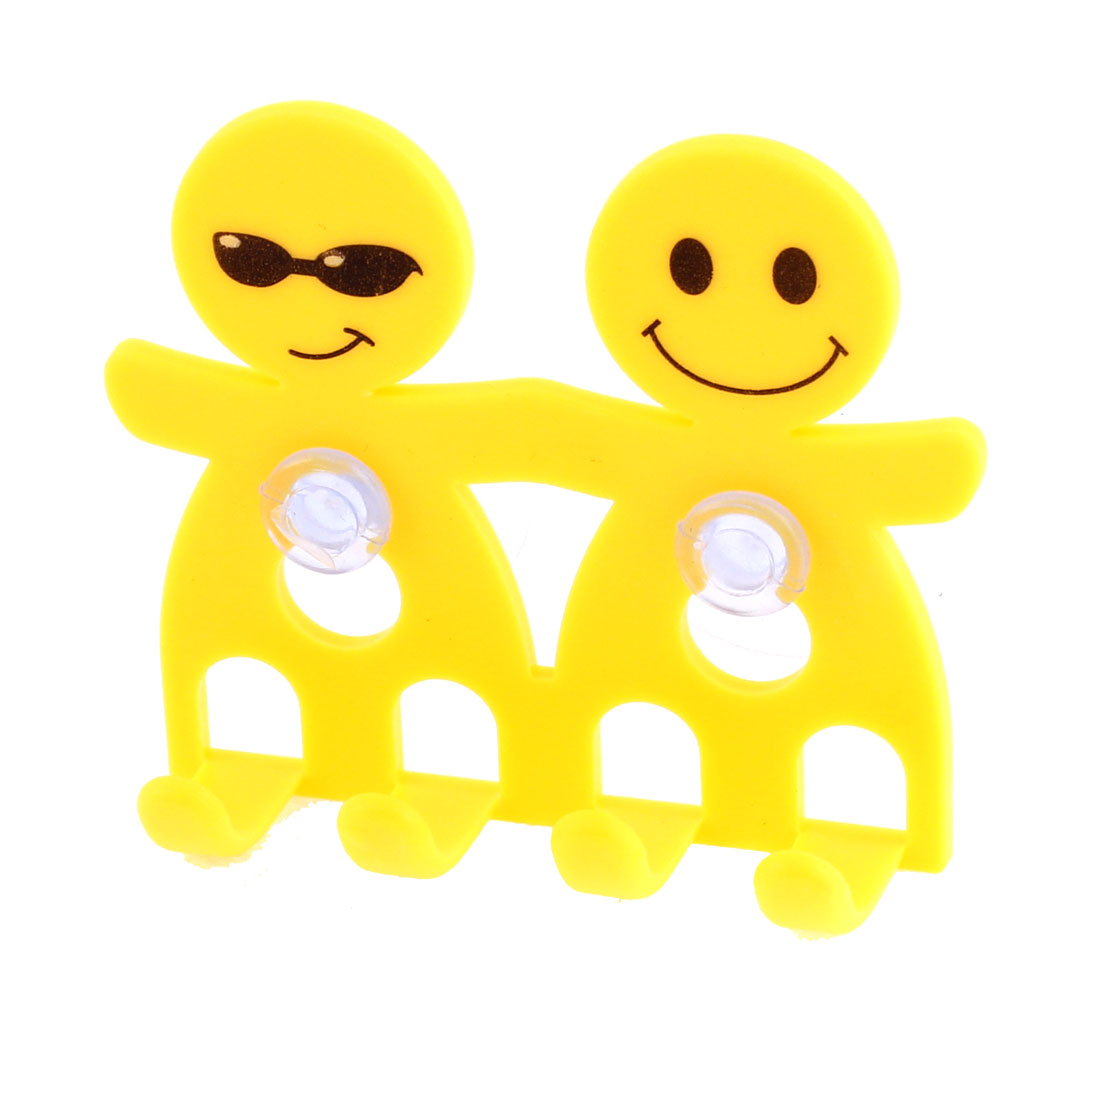 Home Suction Cup Plastic Toothbrush Toothpaste Holder Yellow